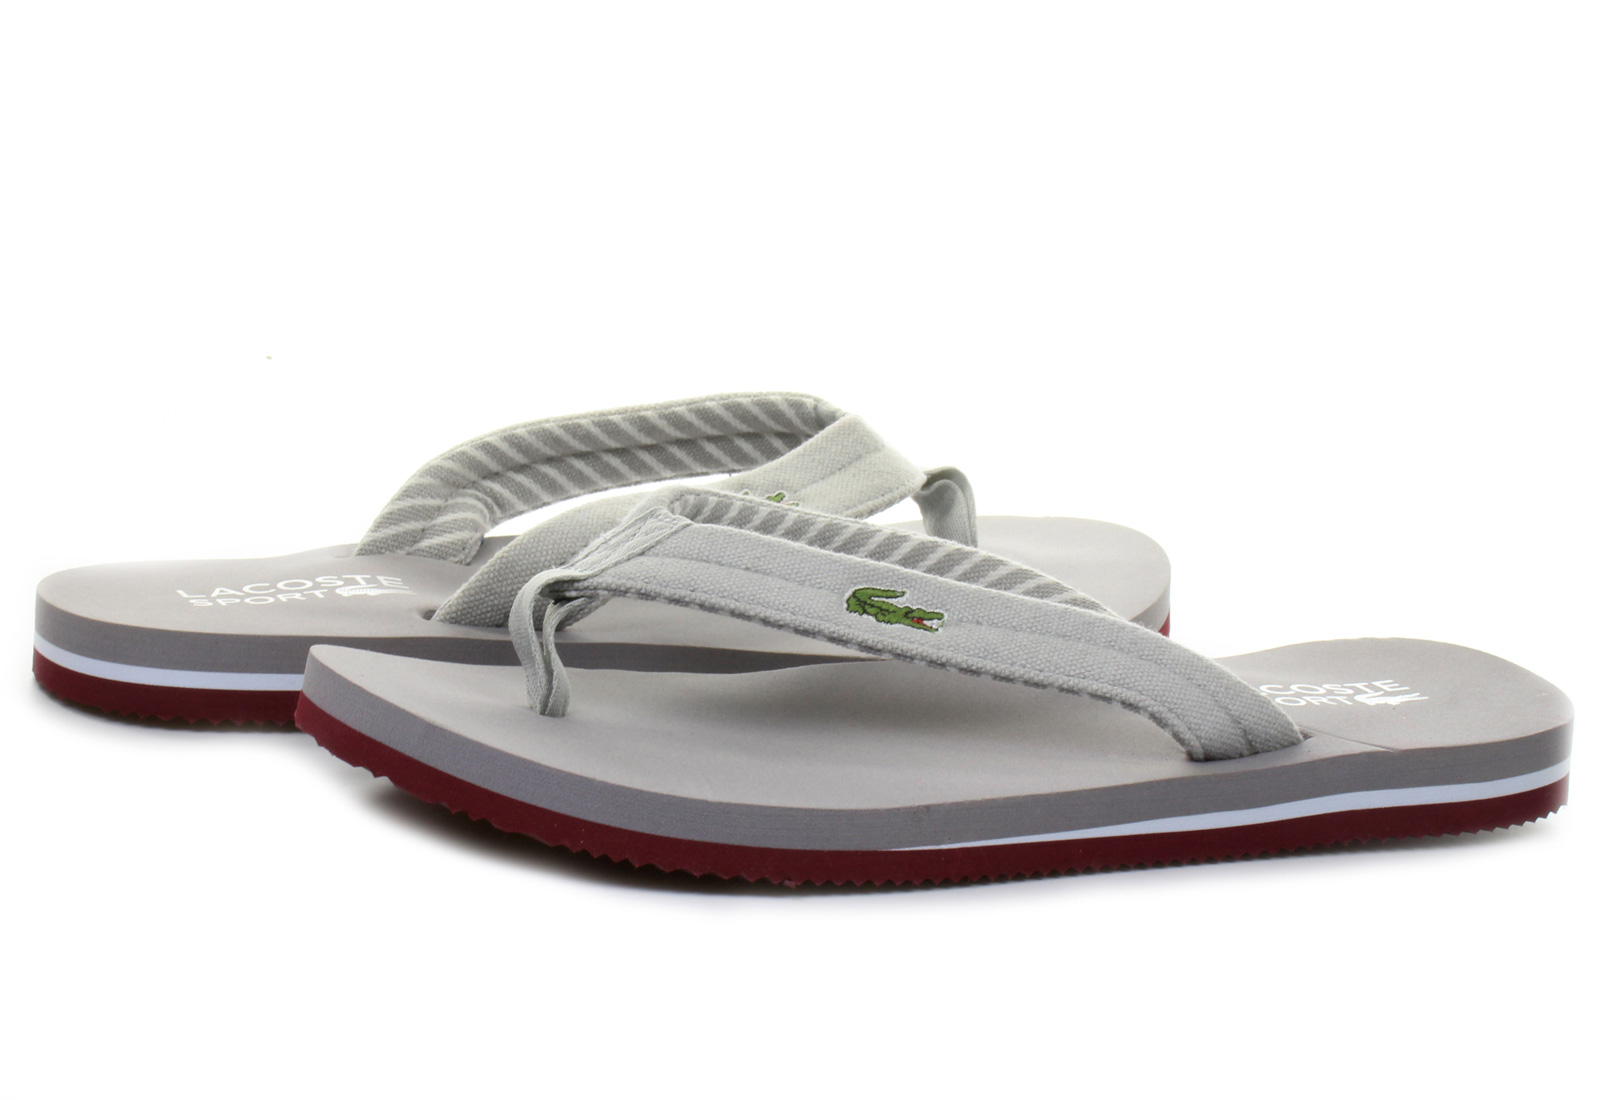 0e230b1d0 Lacoste Slippers - Randle - 141spw0115-12c - Online shop for ...